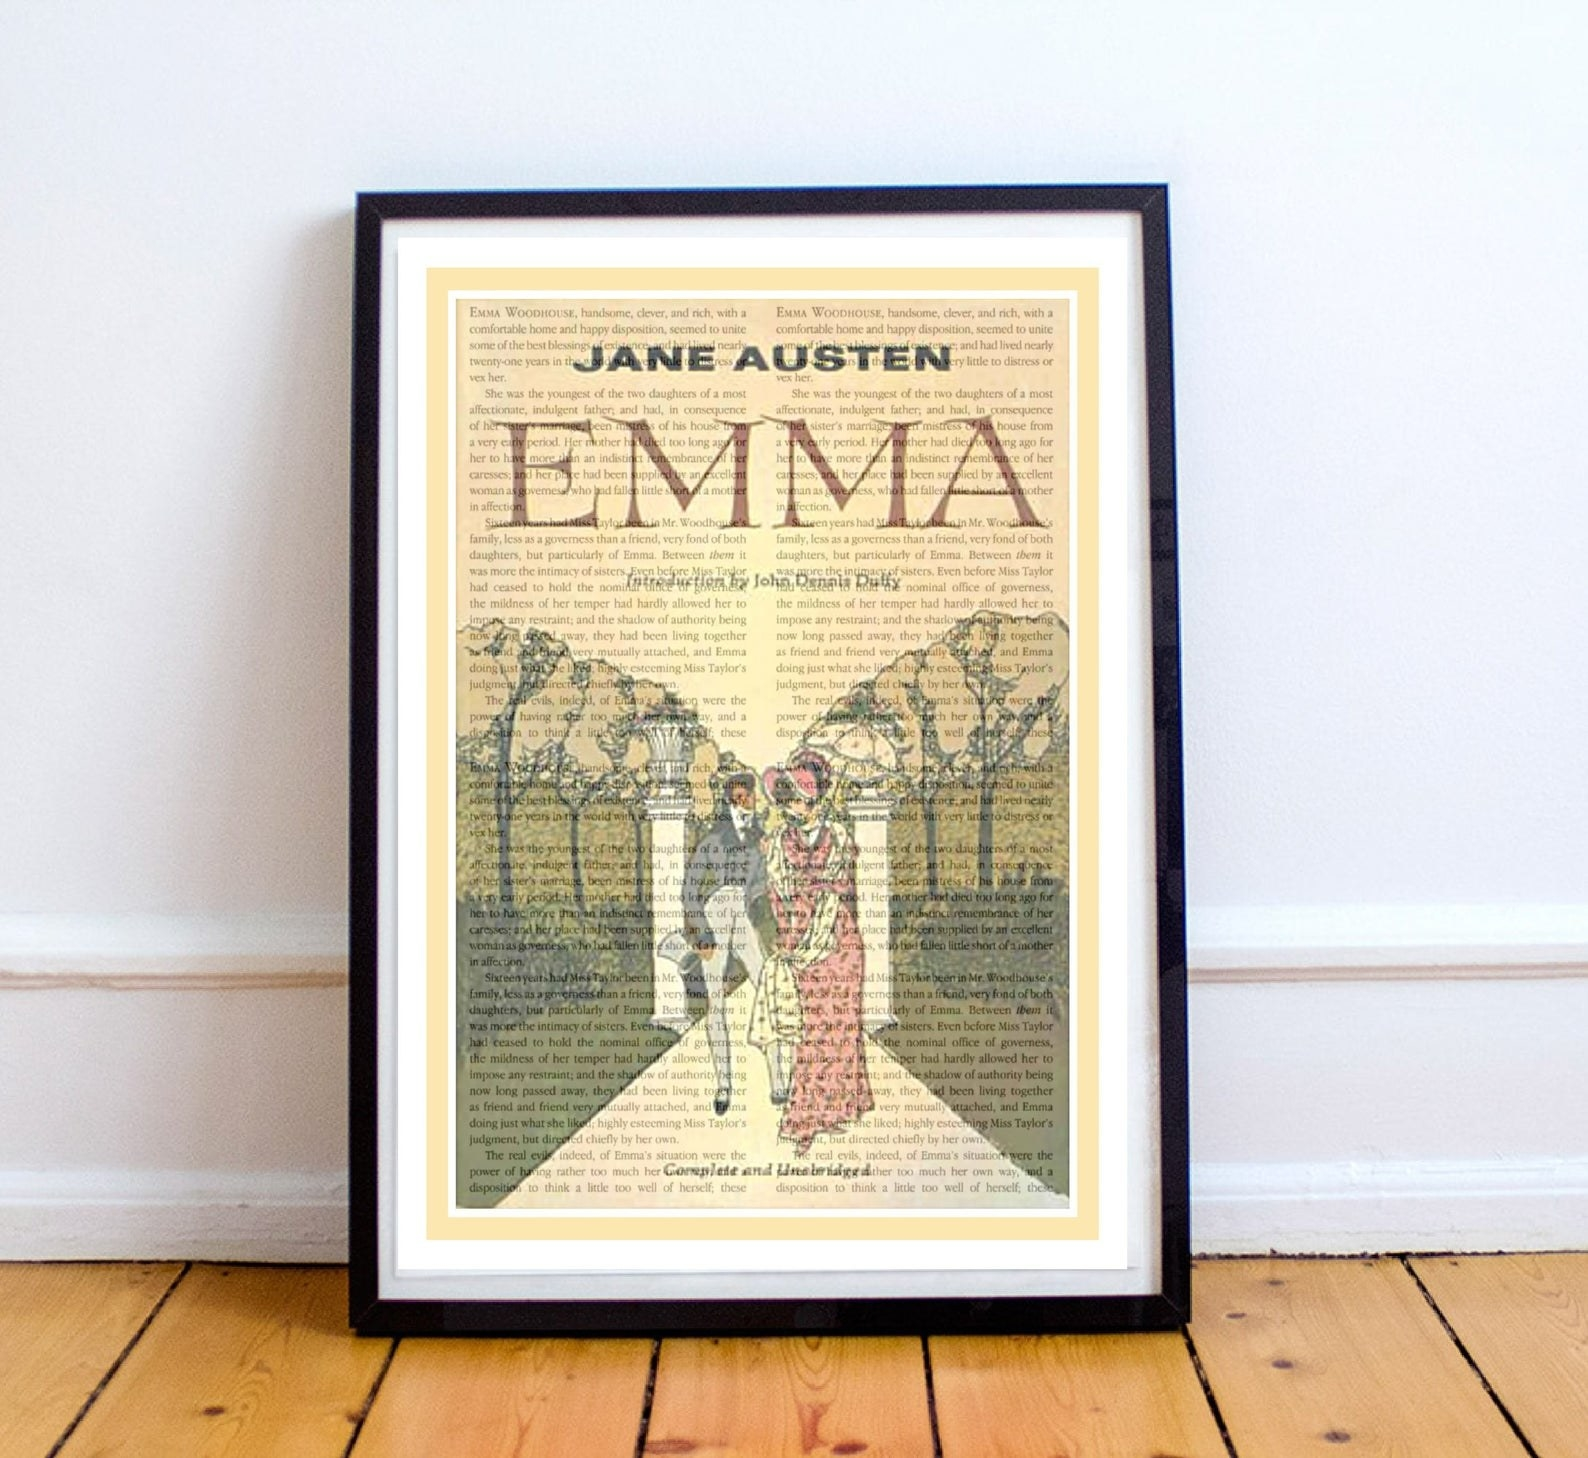 the art print with text framed with a black frame and sitting on the floor